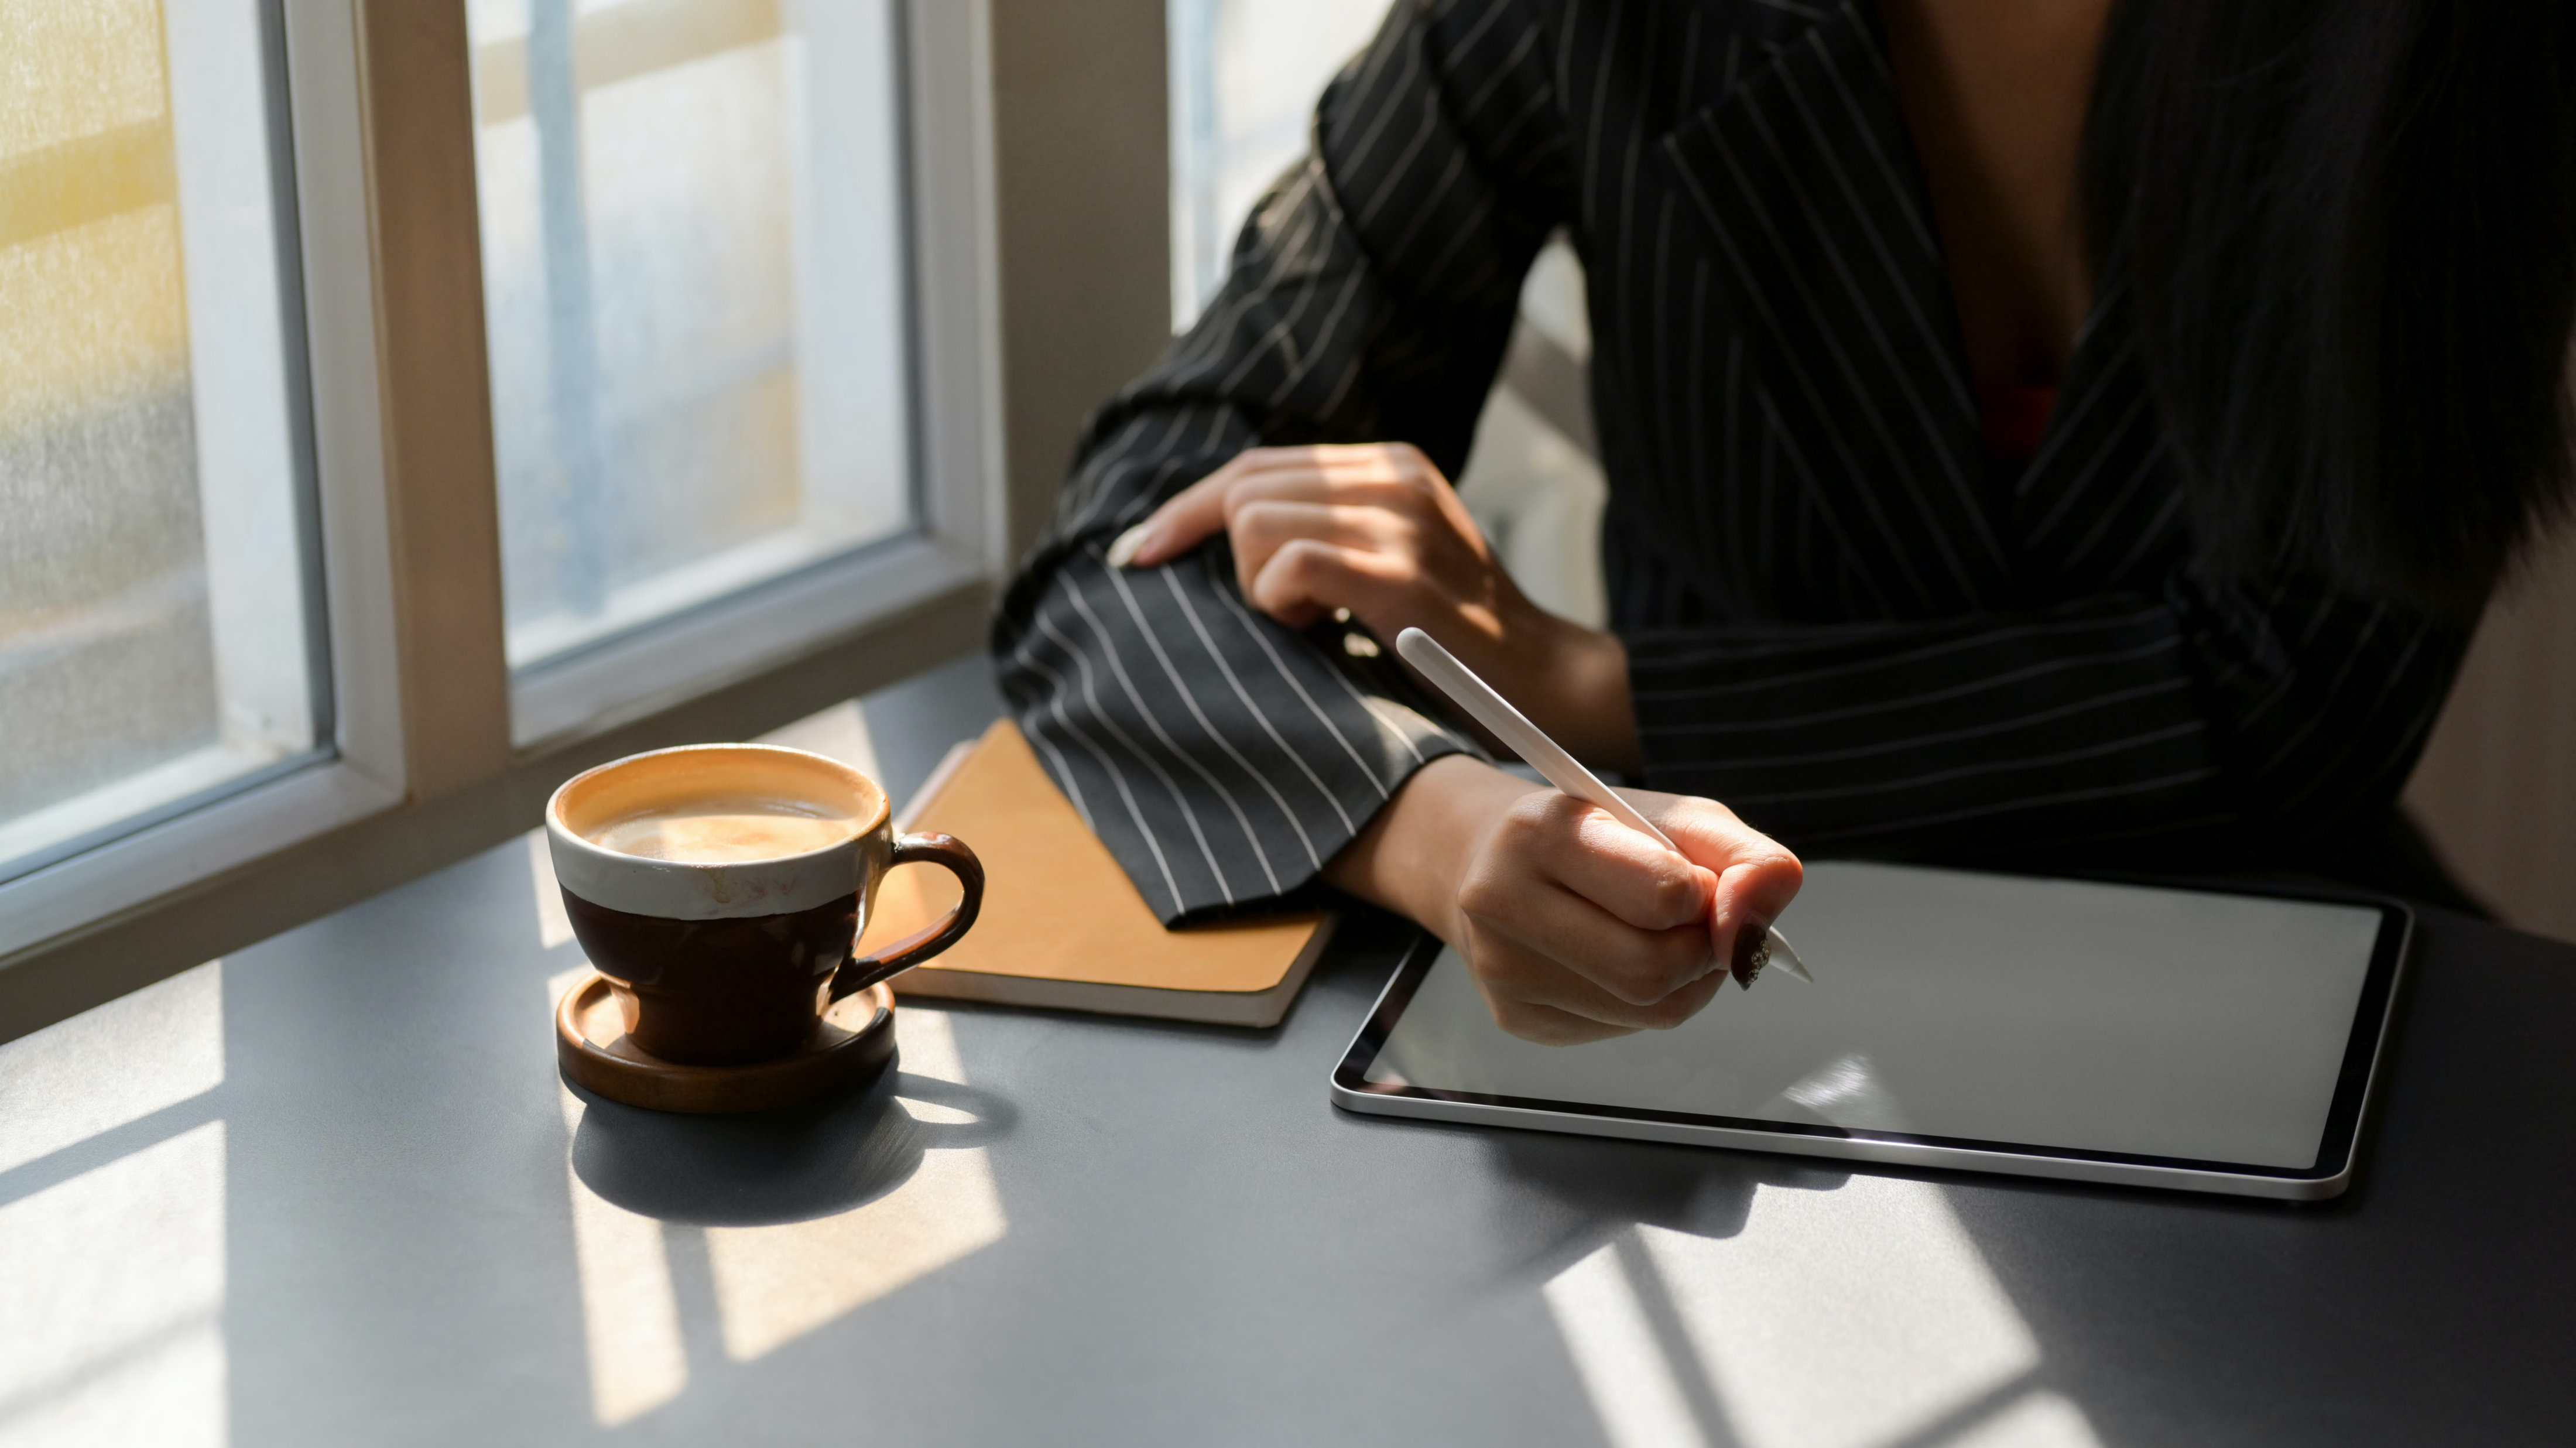 Person, slightly off-screen, using tablet on a desk with a notebook and coffee